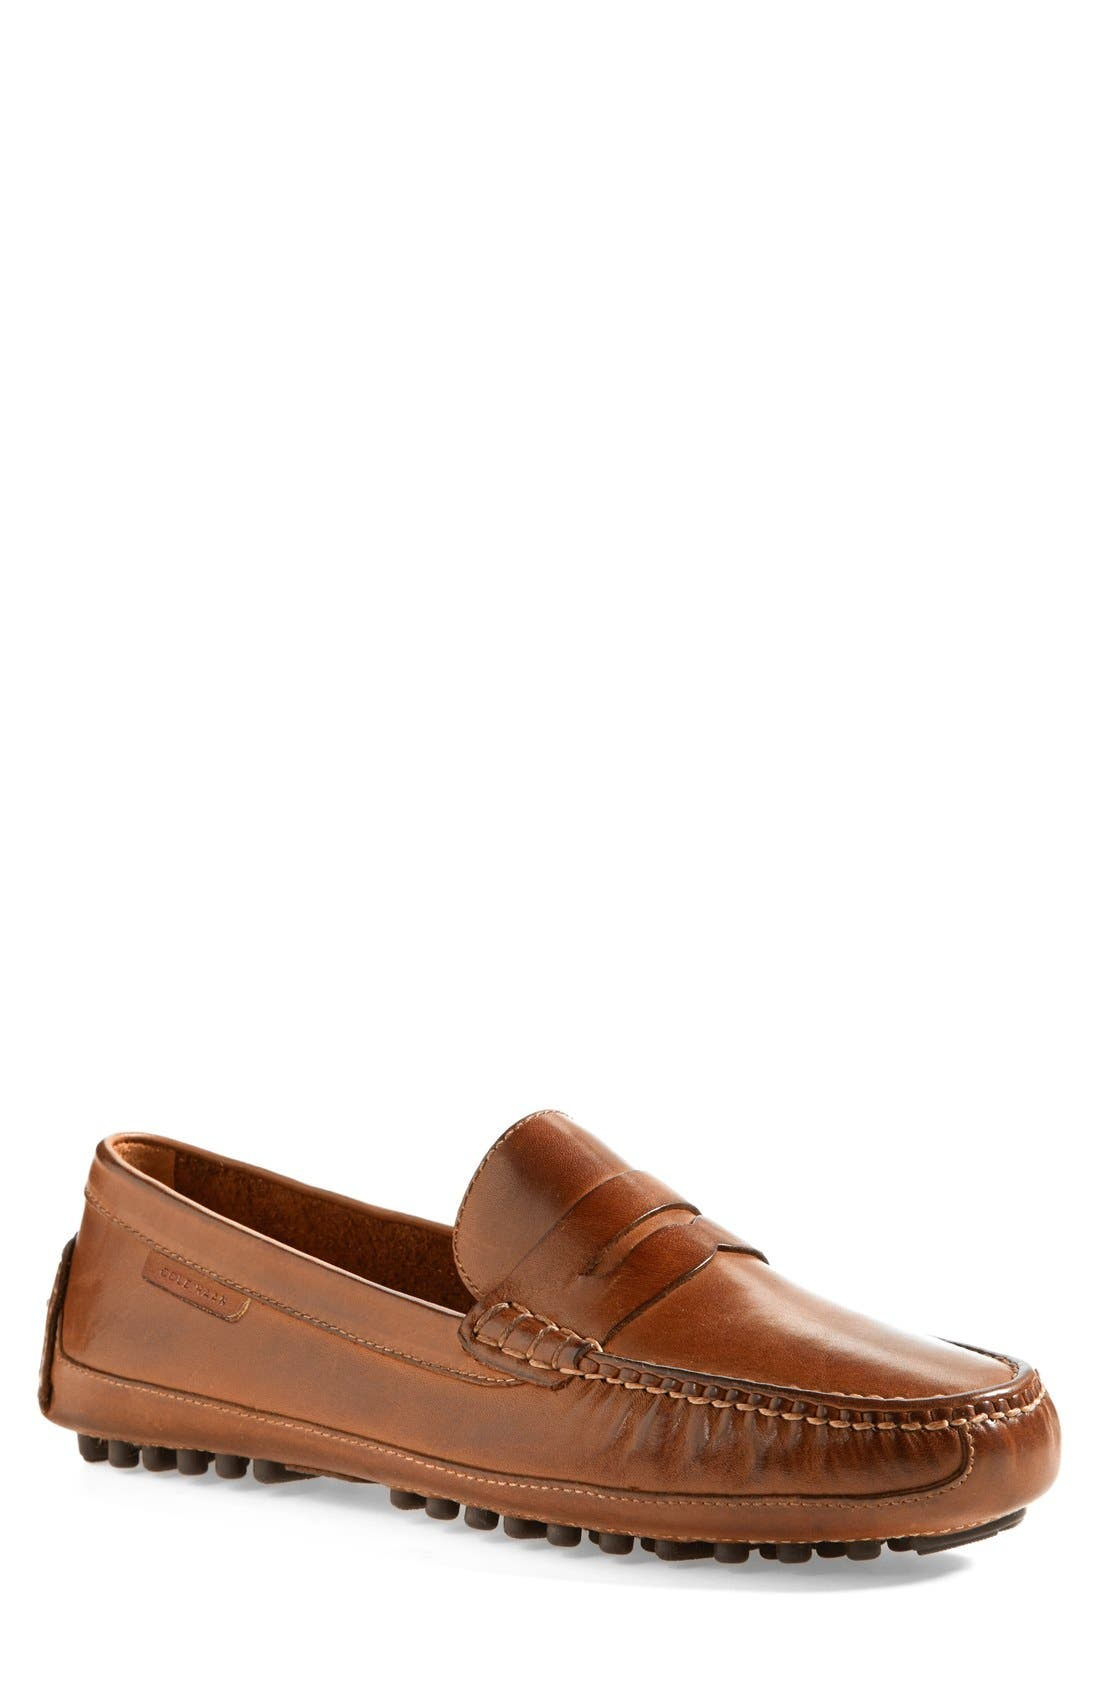 'Grant Canoe' Penny Loafer,                         Main,                         color, Papaya Leather